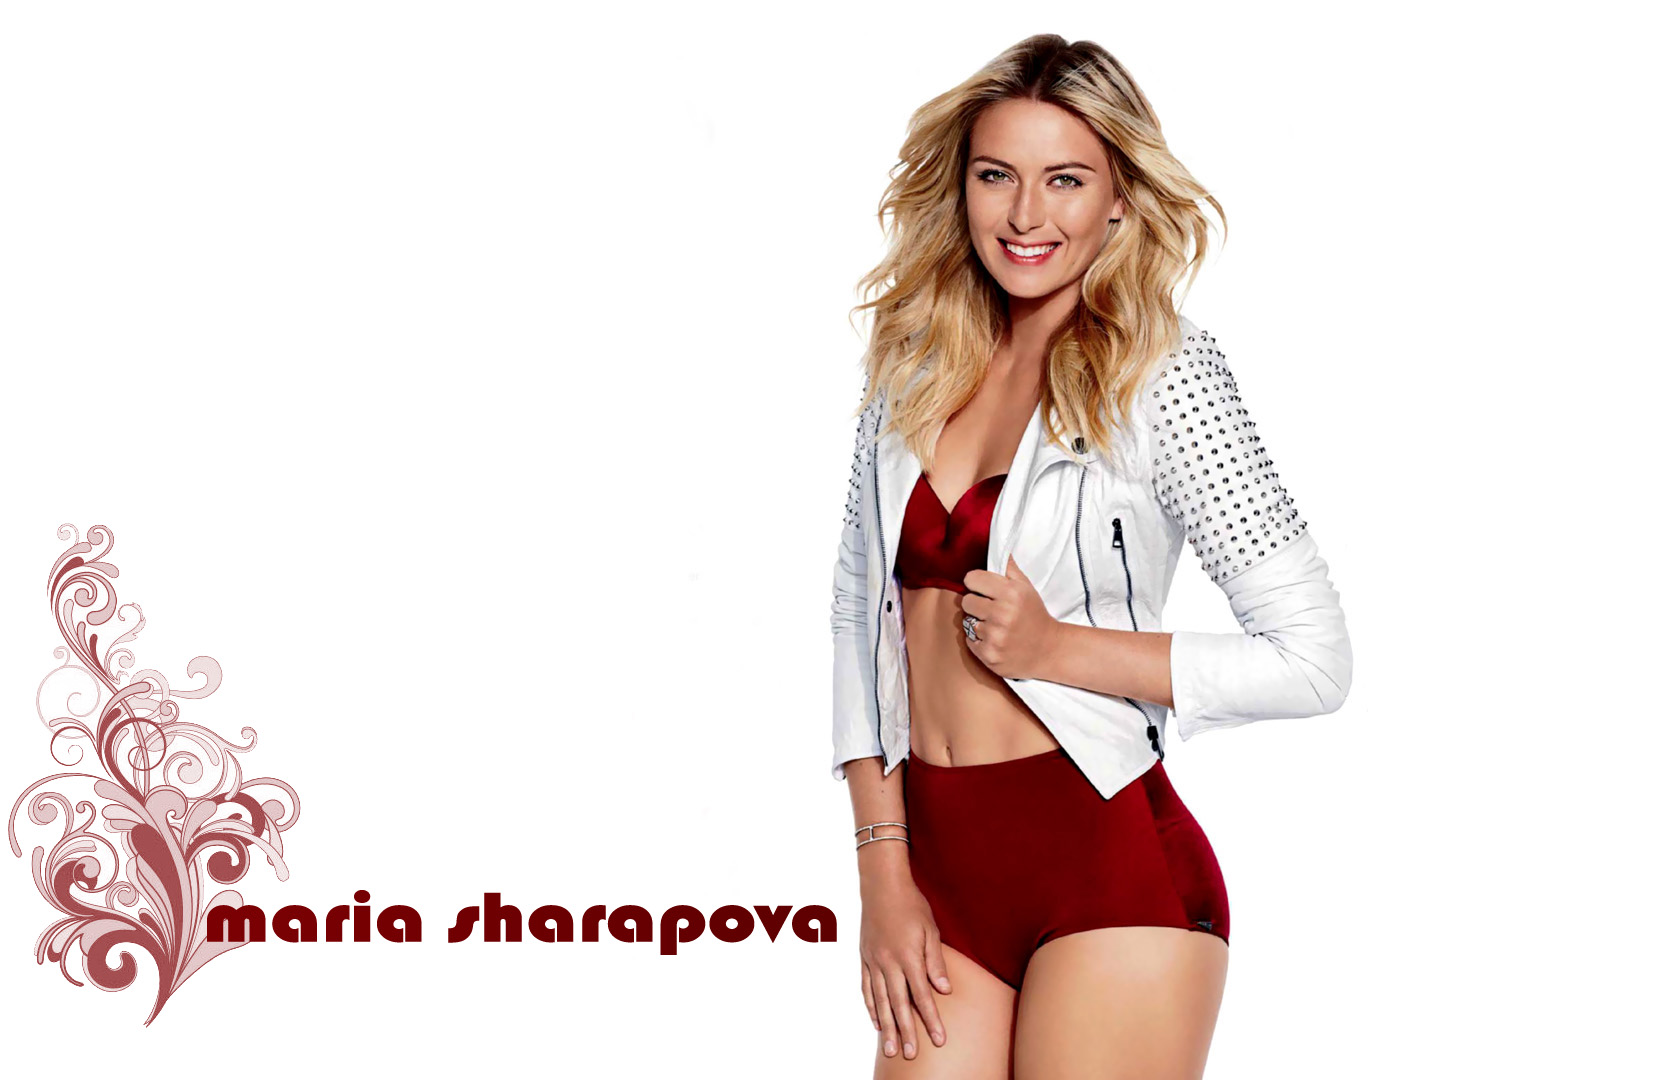 maria sharapova 6 wallpapers - gotceleb